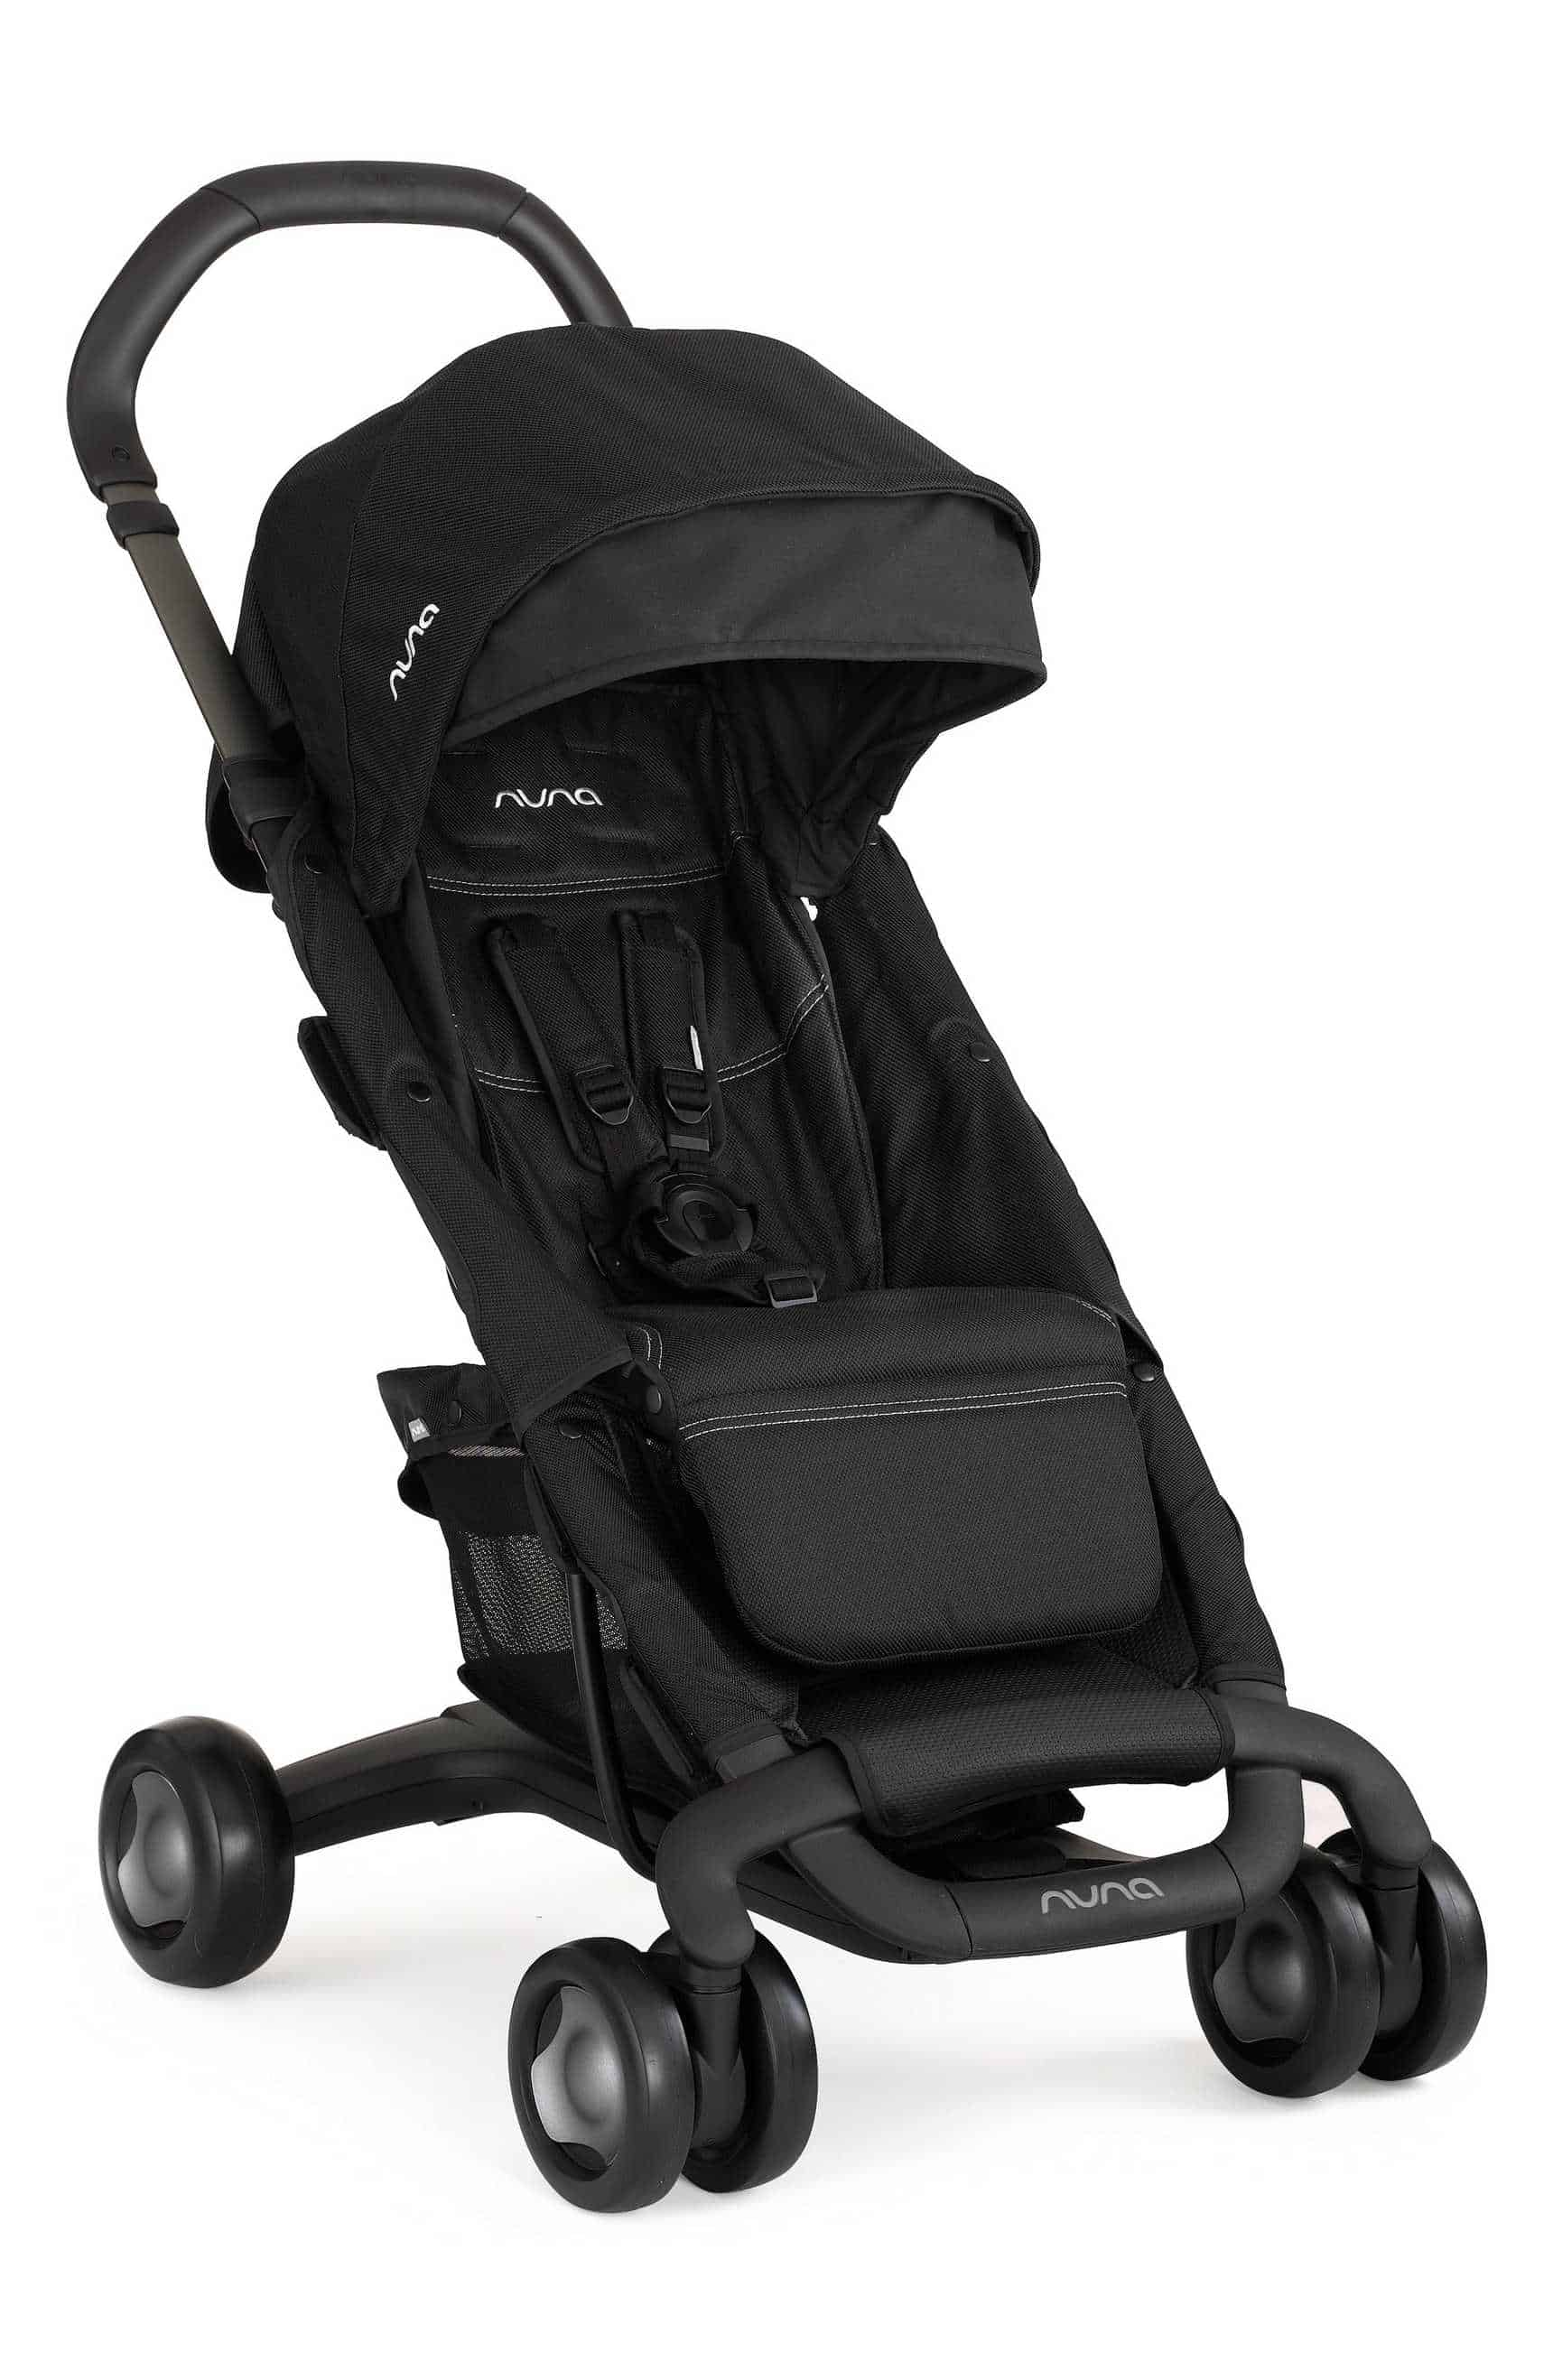 Stroller Brand Review: Nuna